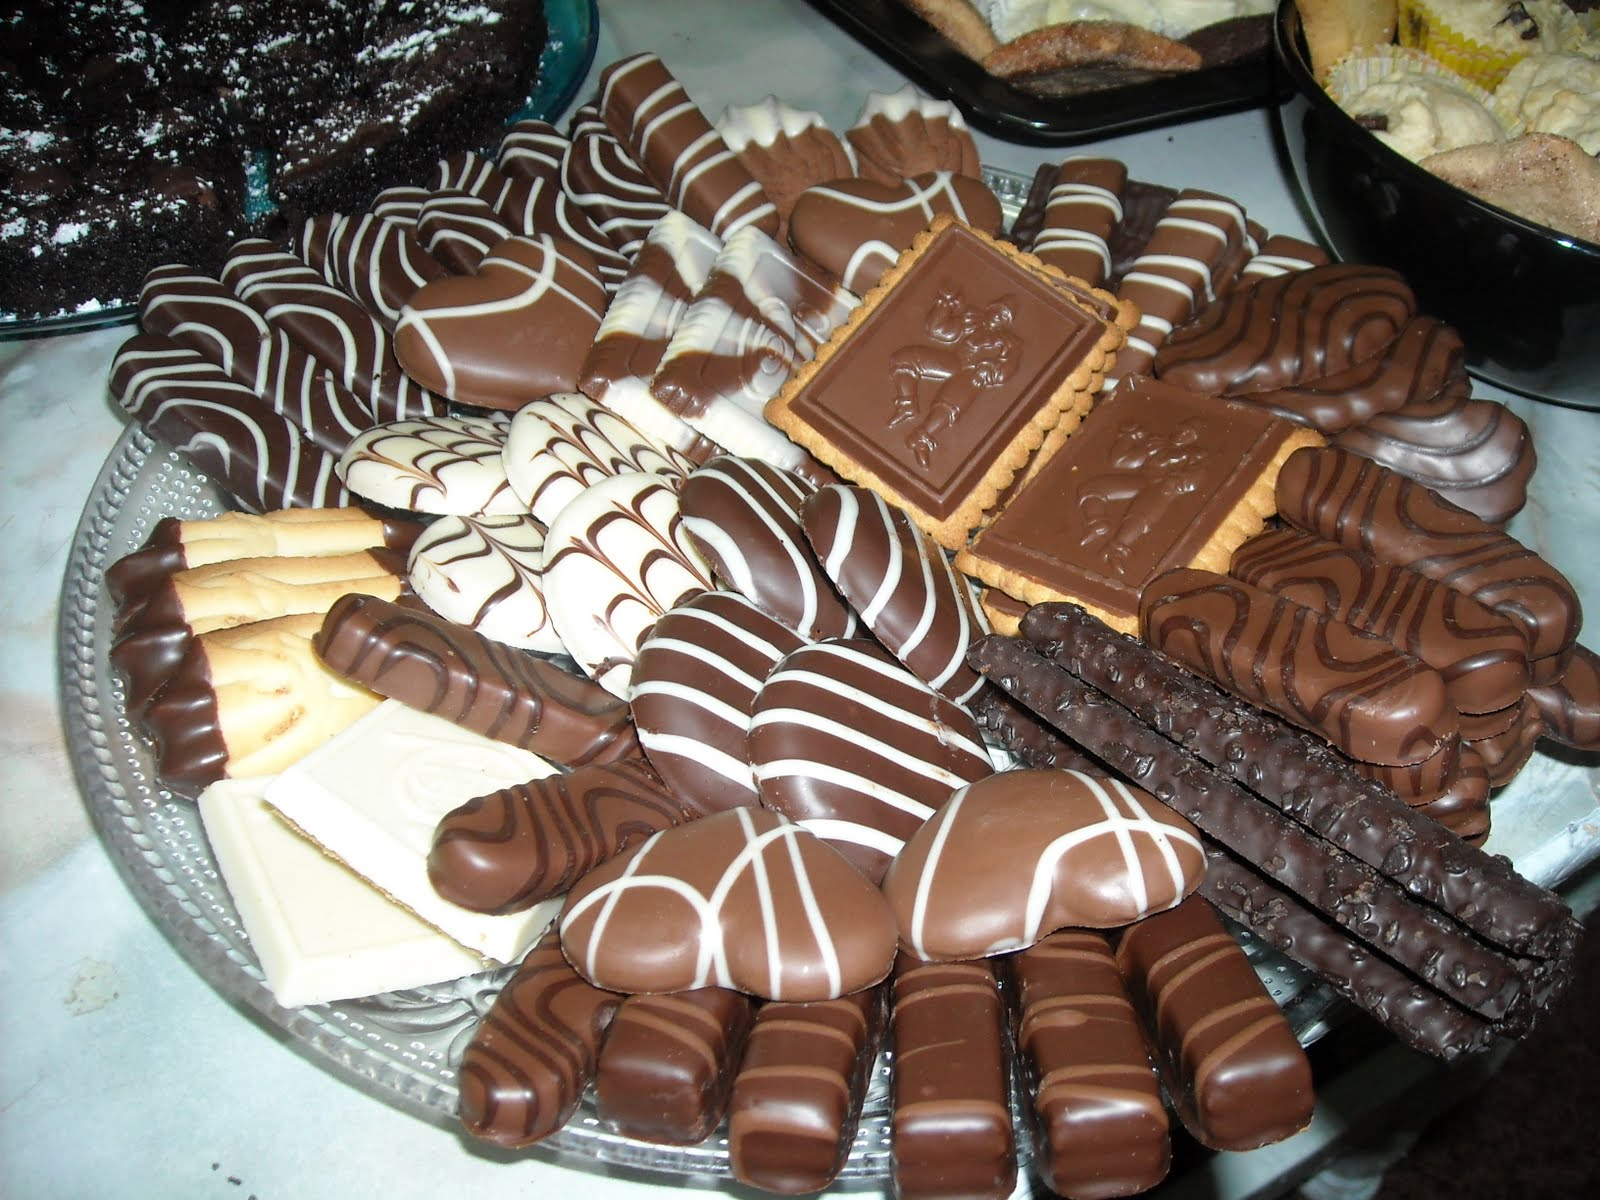 Belgian Chocolate Wallpapers High Quality Download Free